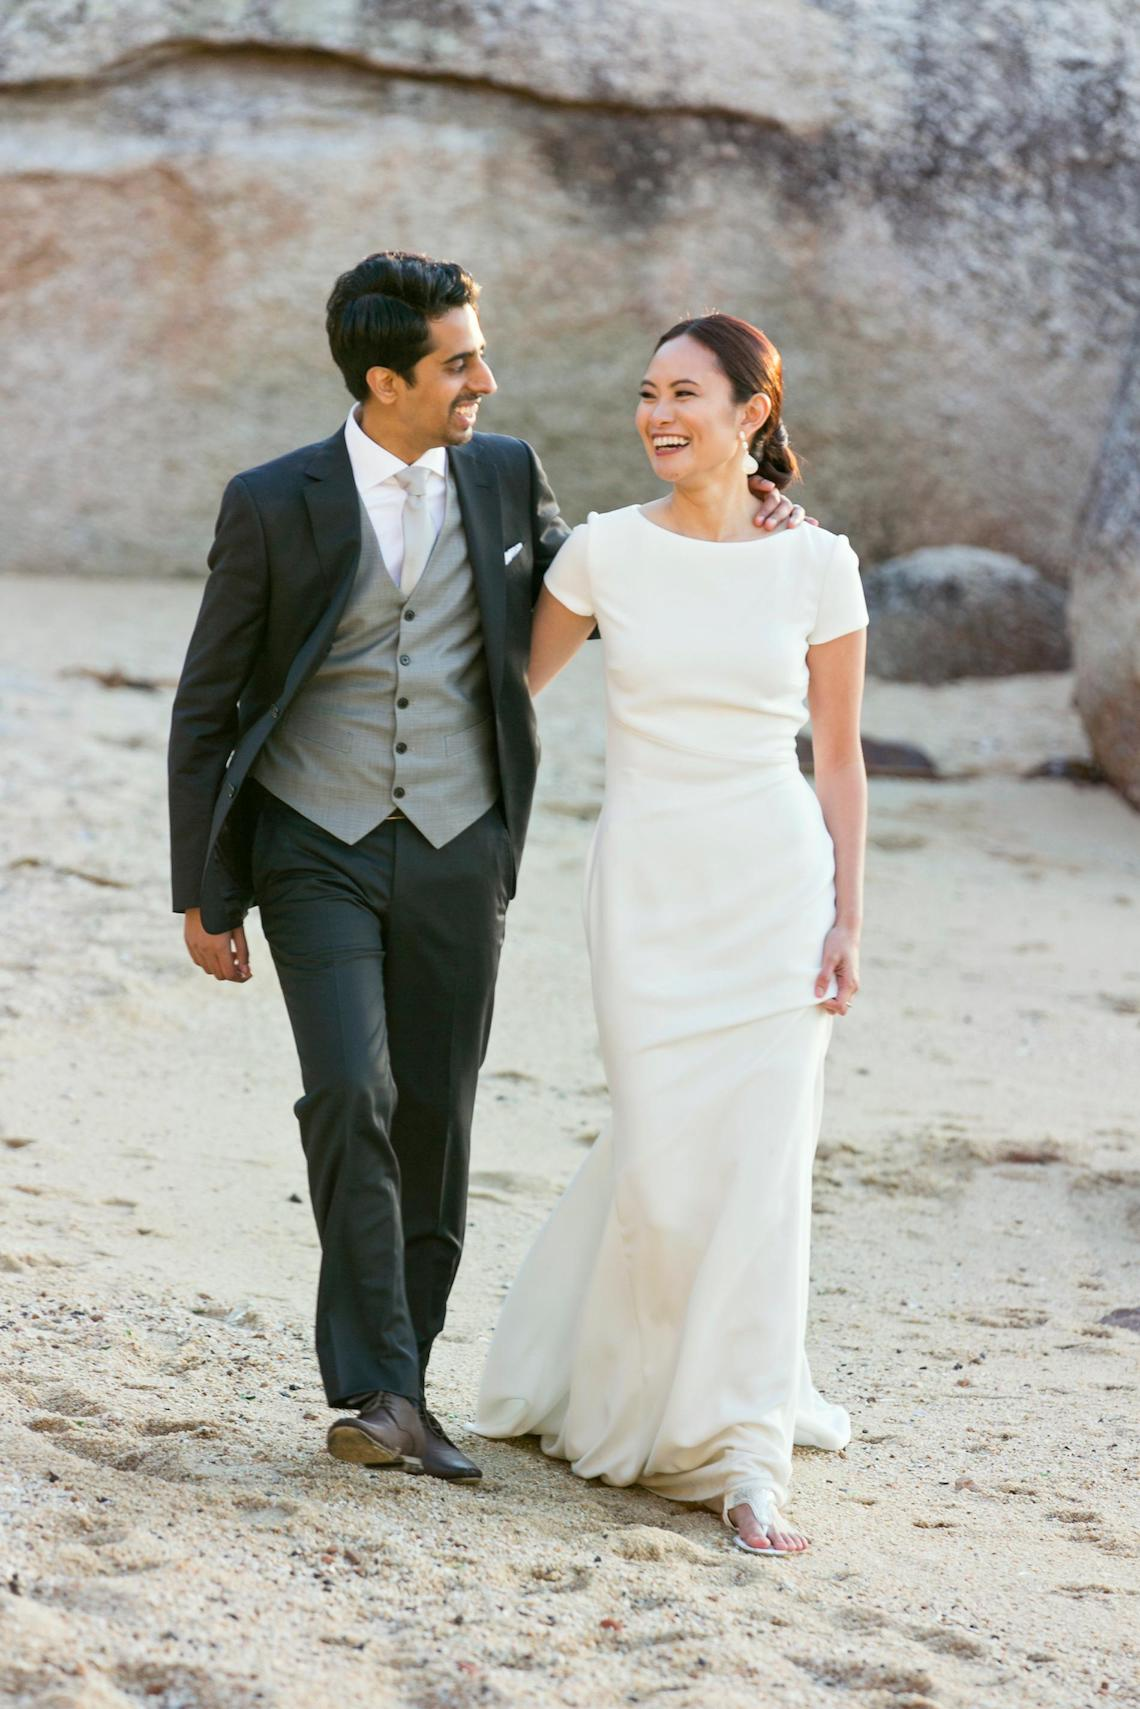 Cape Town Destination Wedding with Spectacular Mountain Views | ZaraZoo Photography 88